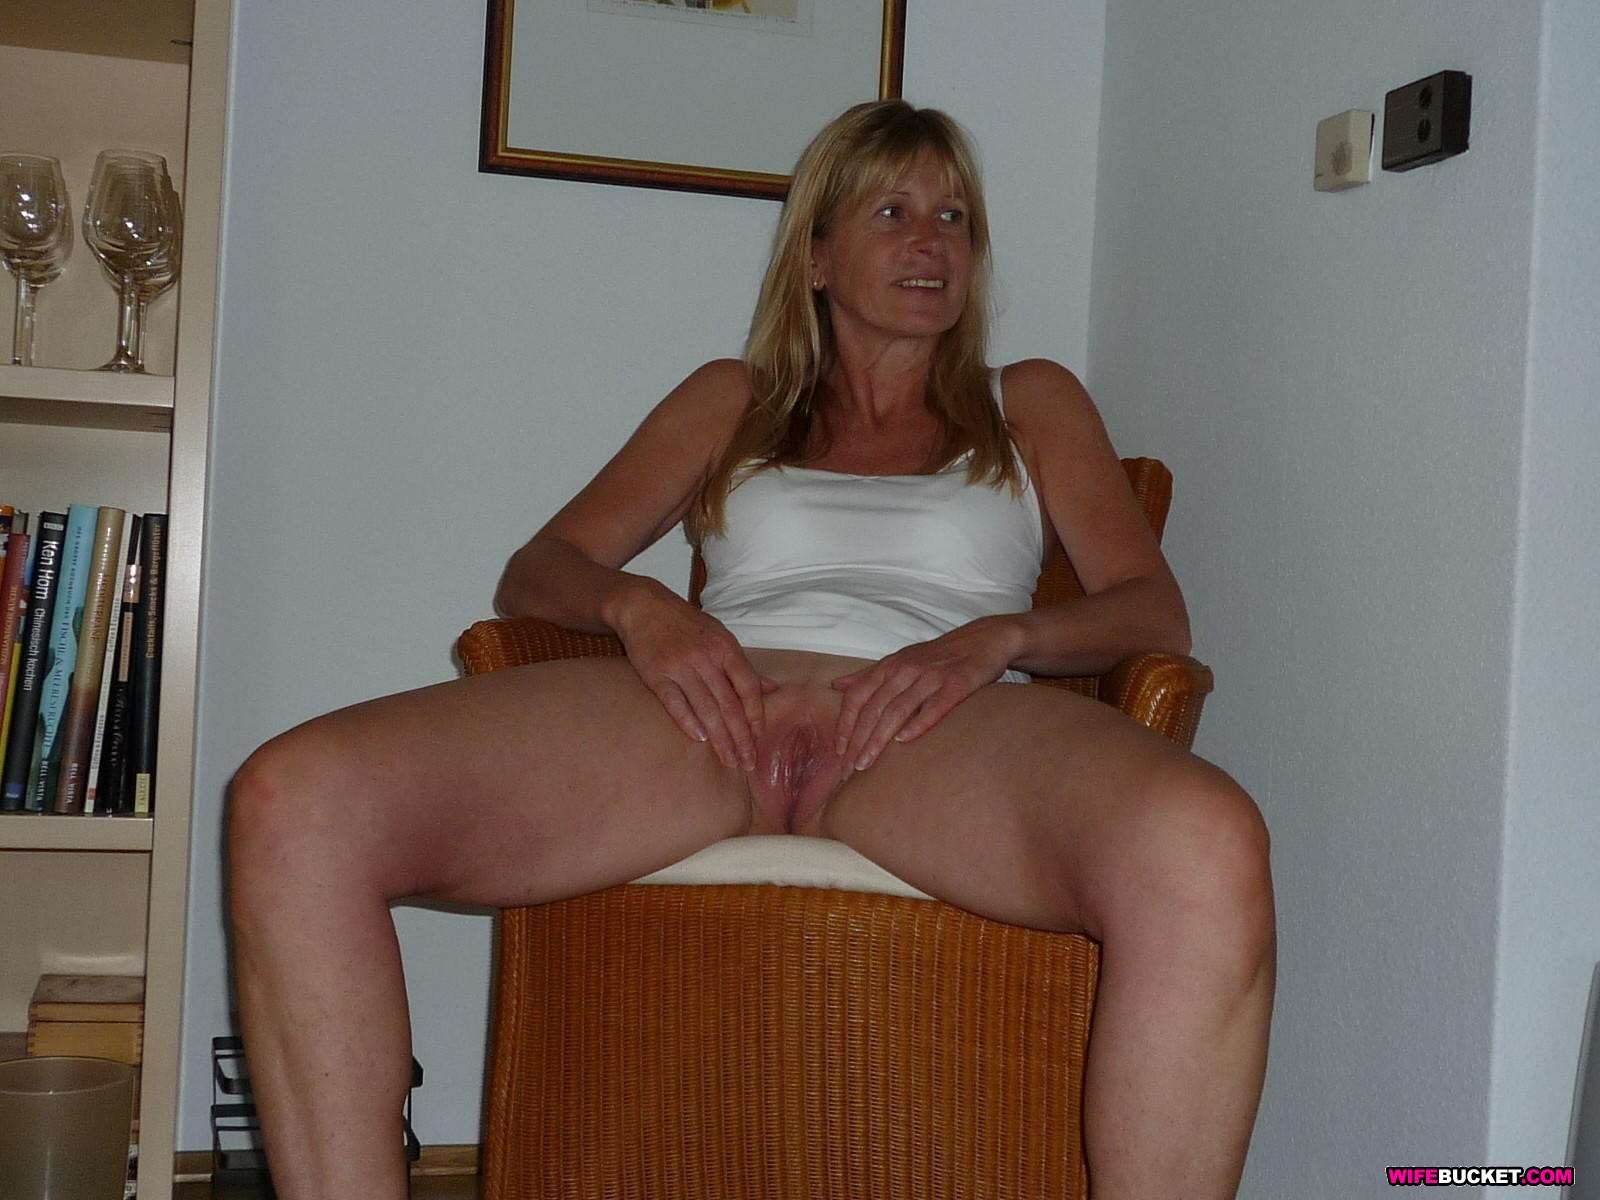 dating for professionals uk